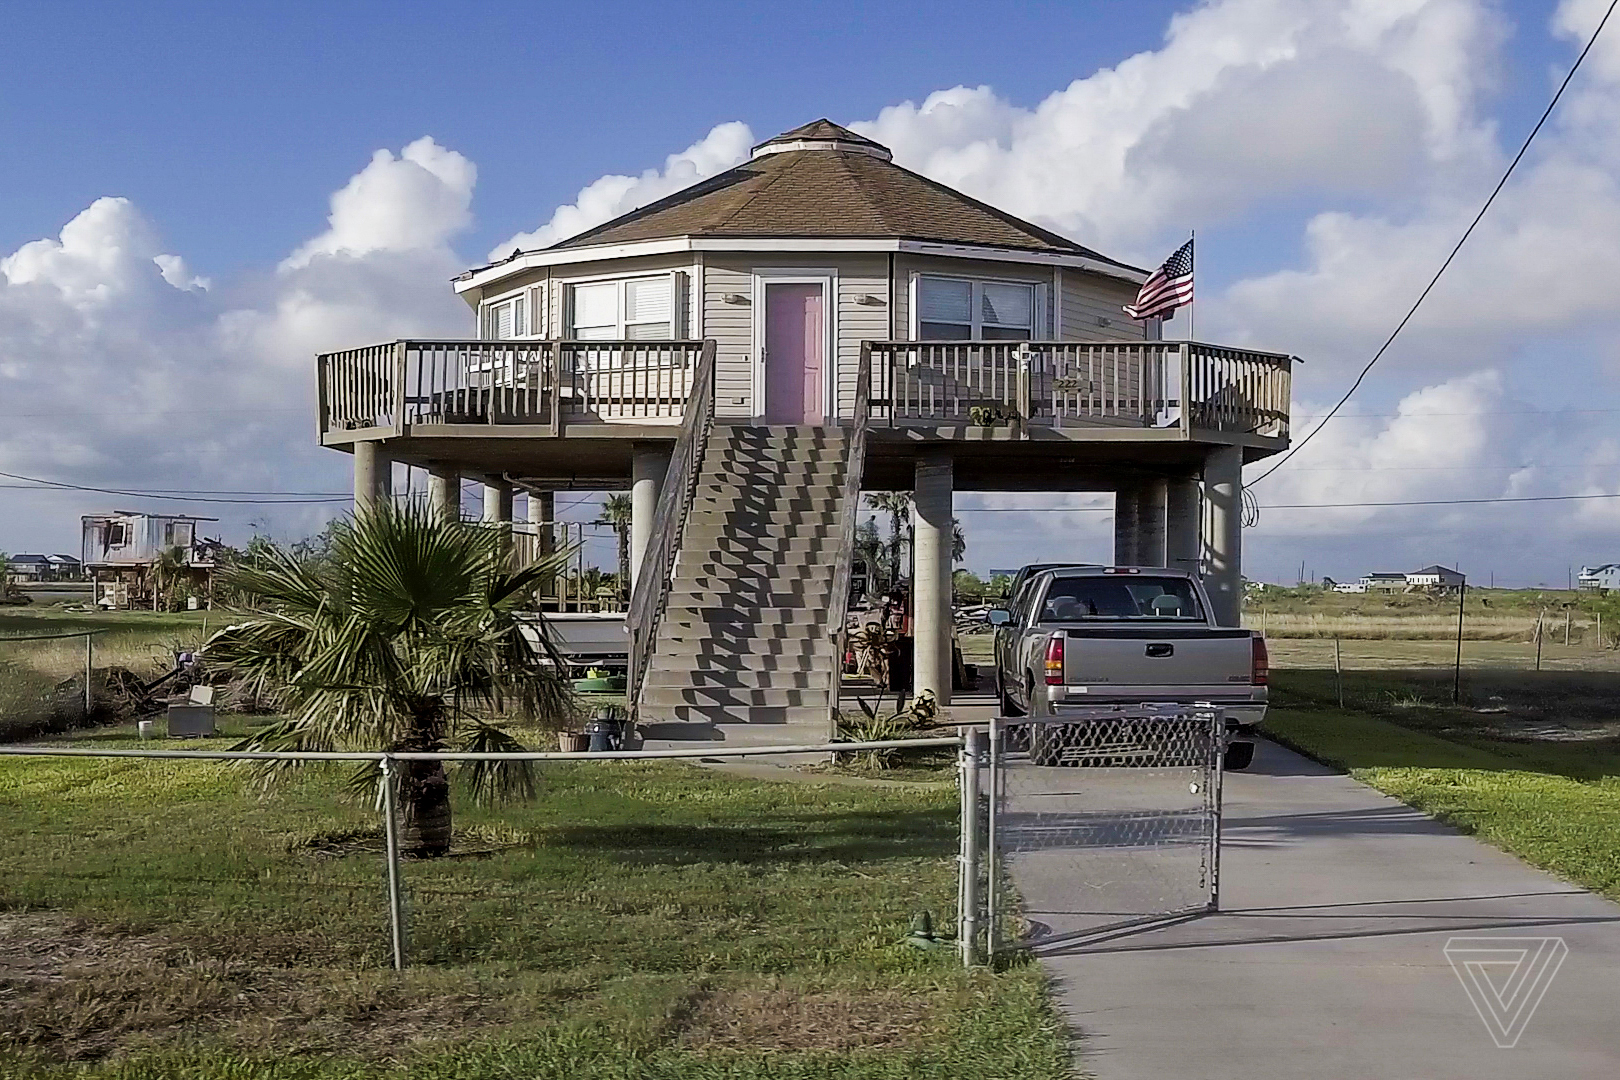 This hurricane-proof home can withstand powerful storms, thanks to ...